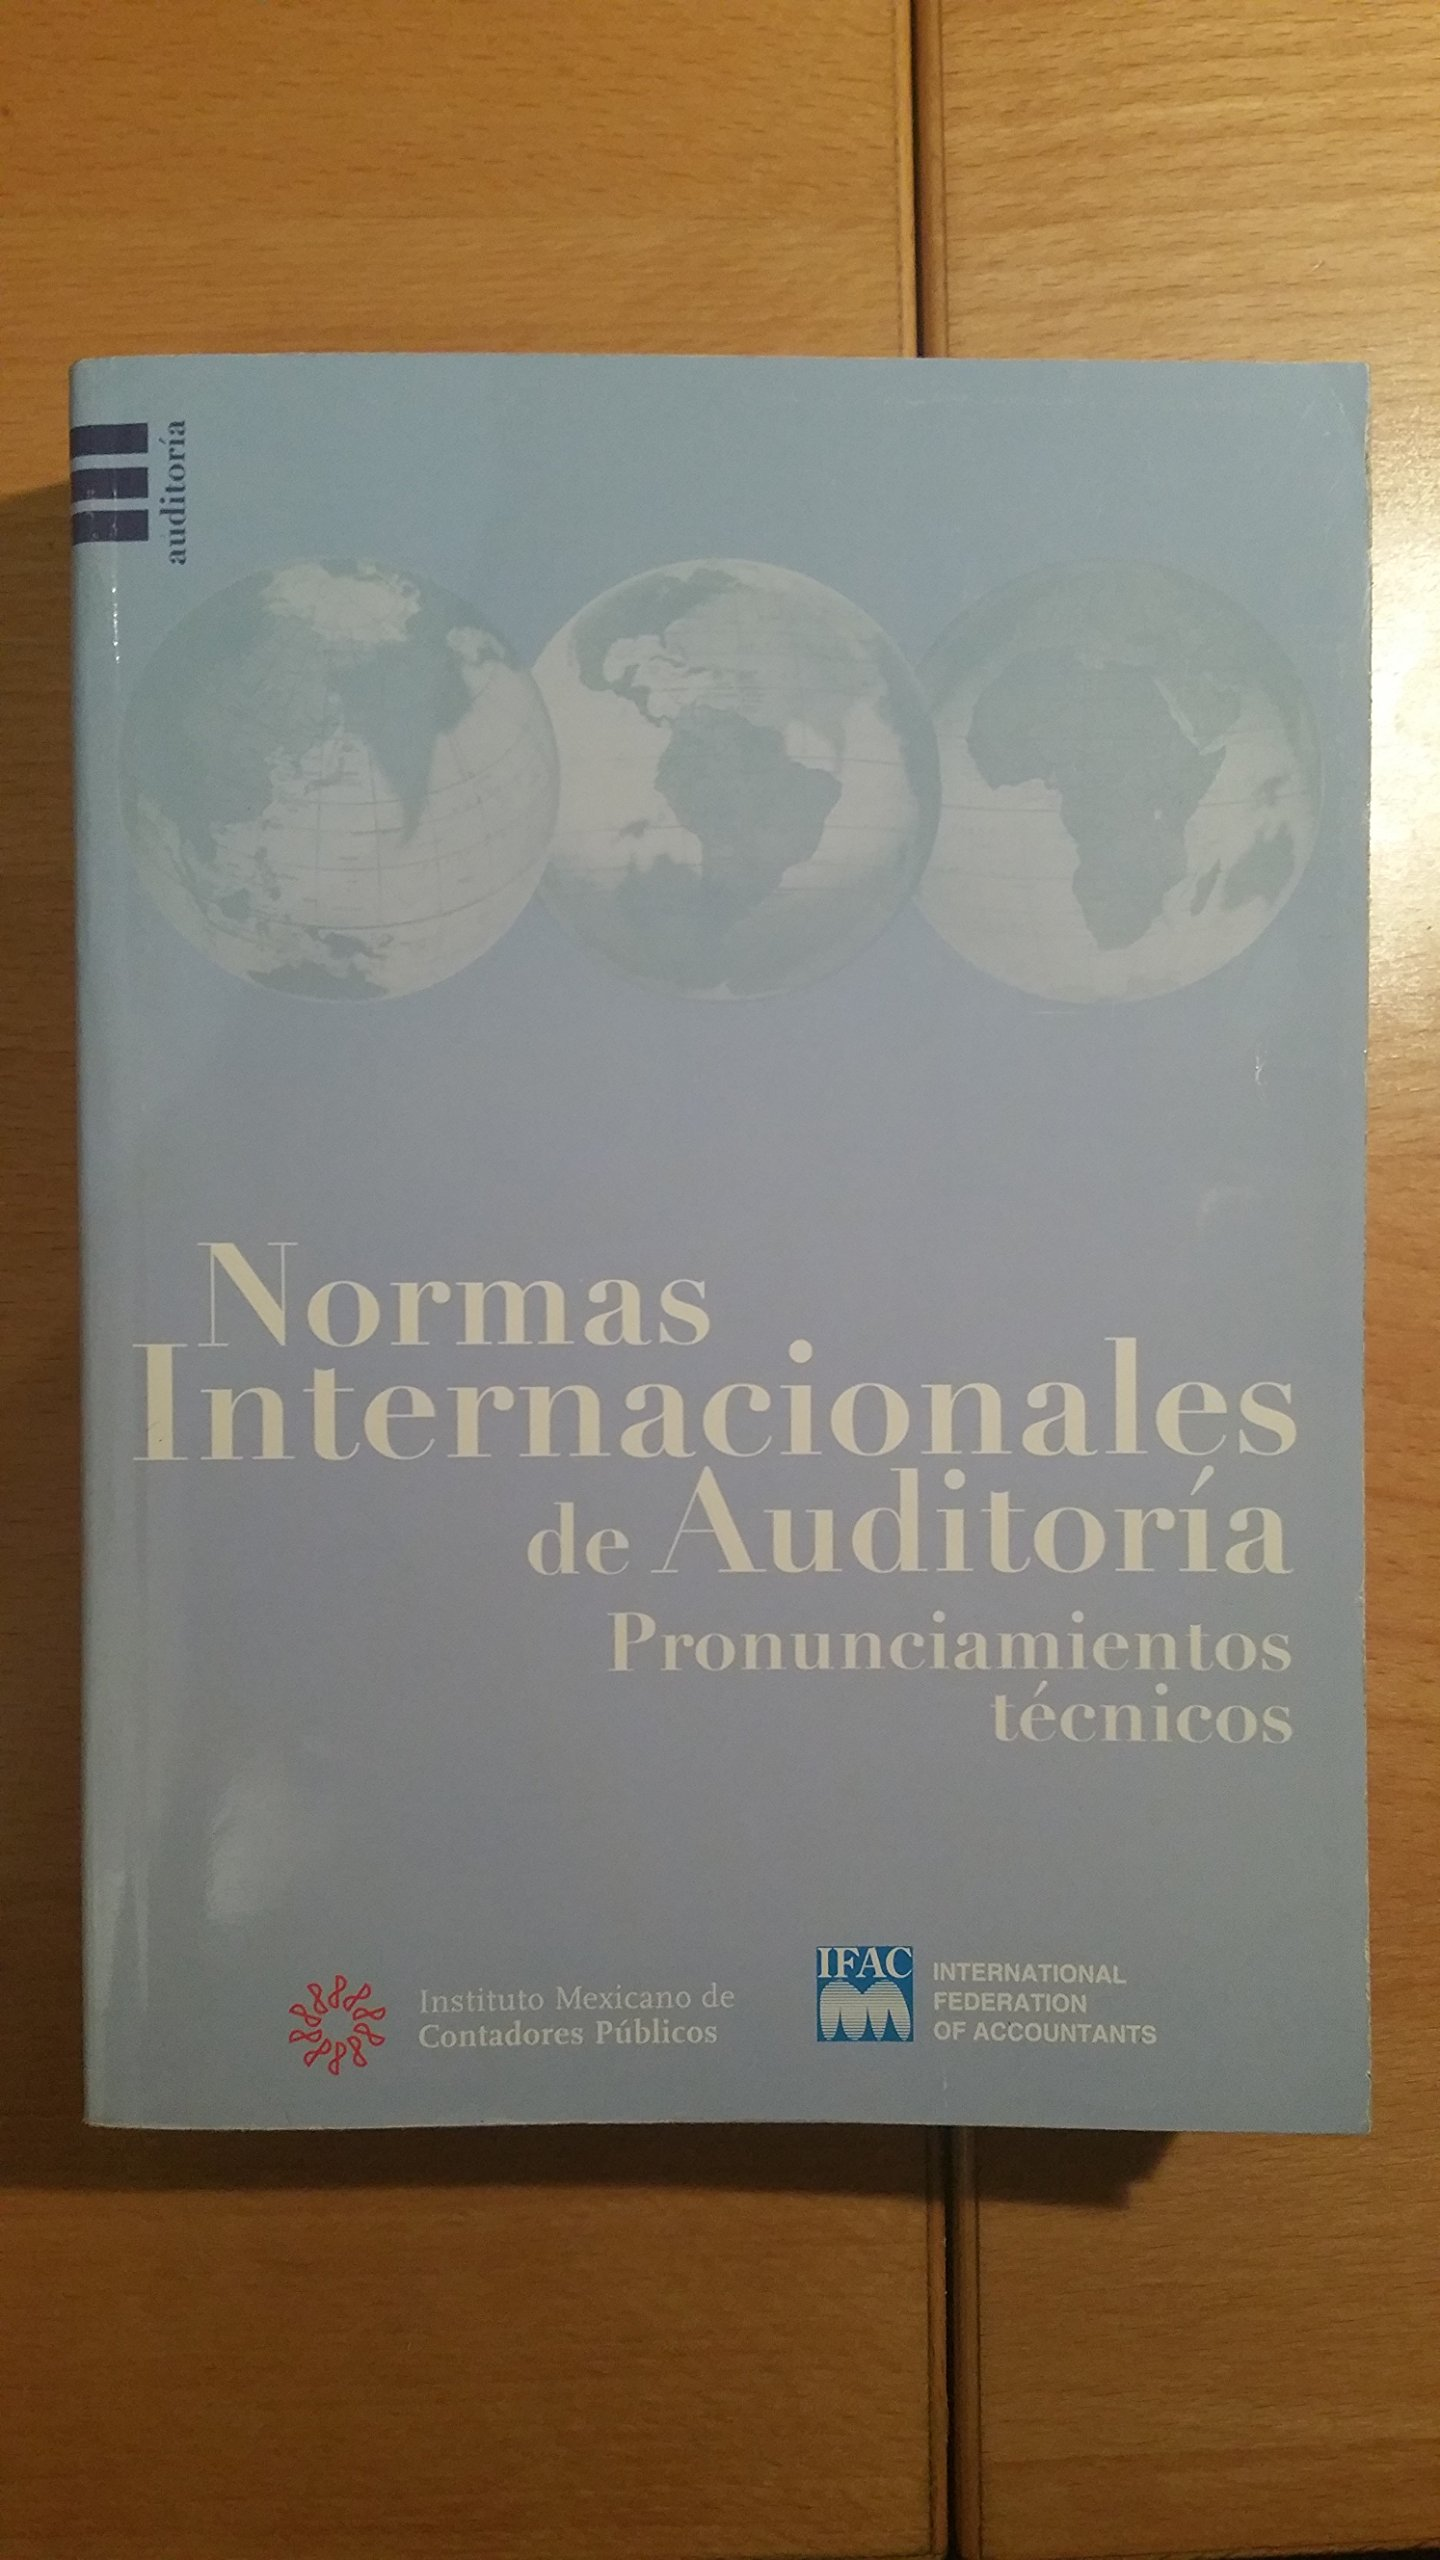 Normas internacionales de Auditoria NIA 2006: Amazon.es: IMCP ...